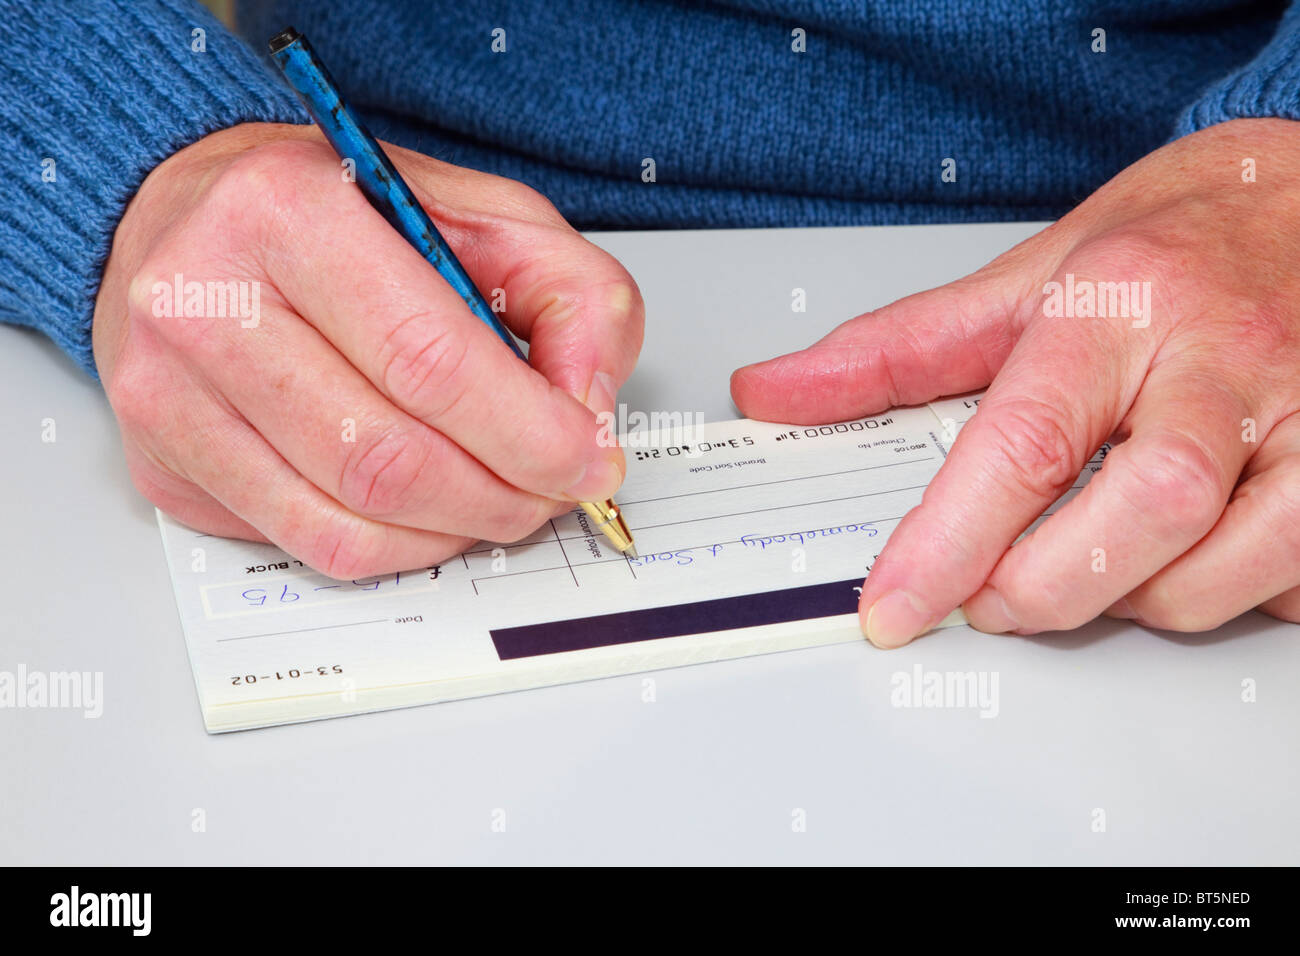 Close-up of a mature woman writing a cheque (check) in a cheque book to pay a bill. England, UK, Britain. - Stock Image